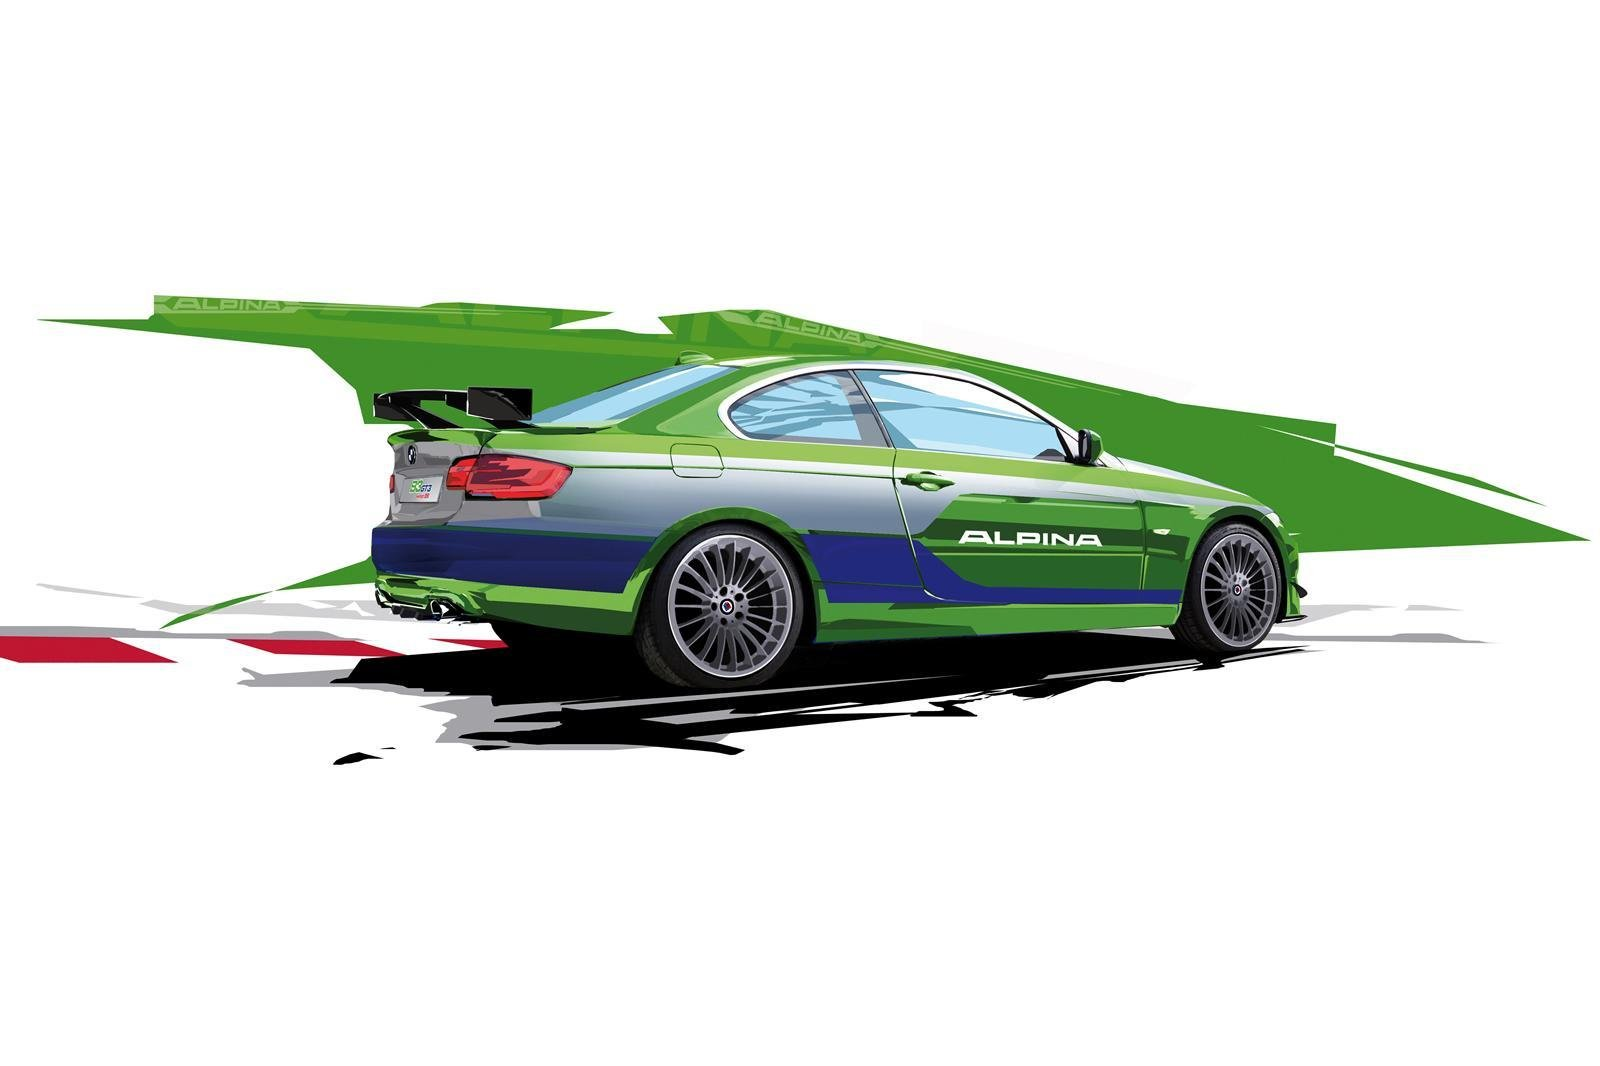 http://pictures.topspeed.com/IMG/crop/201111/bmw-b3-gt3-by-alpina-4_1600x0w.jpg